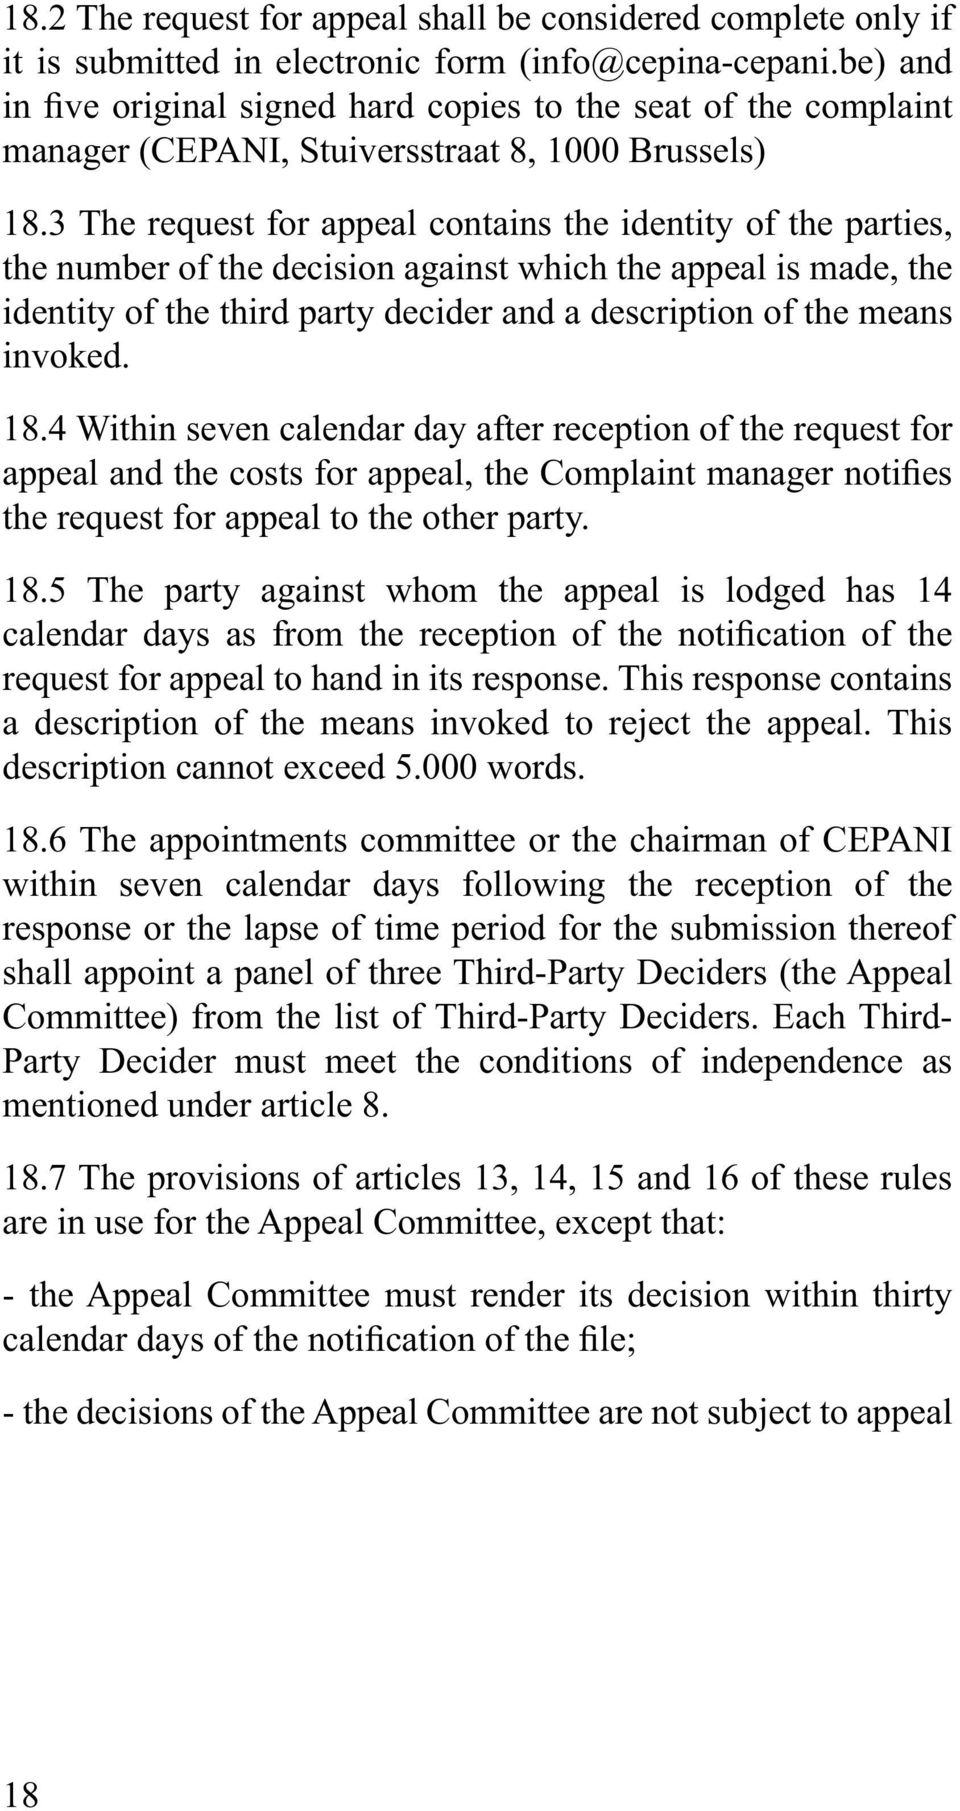 invoked. 18.4 Within seven calendar day after reception of the request for the request for appeal to the other party. 18.5 The party against whom the appeal is lodged has 14 request for appeal to hand in its response.